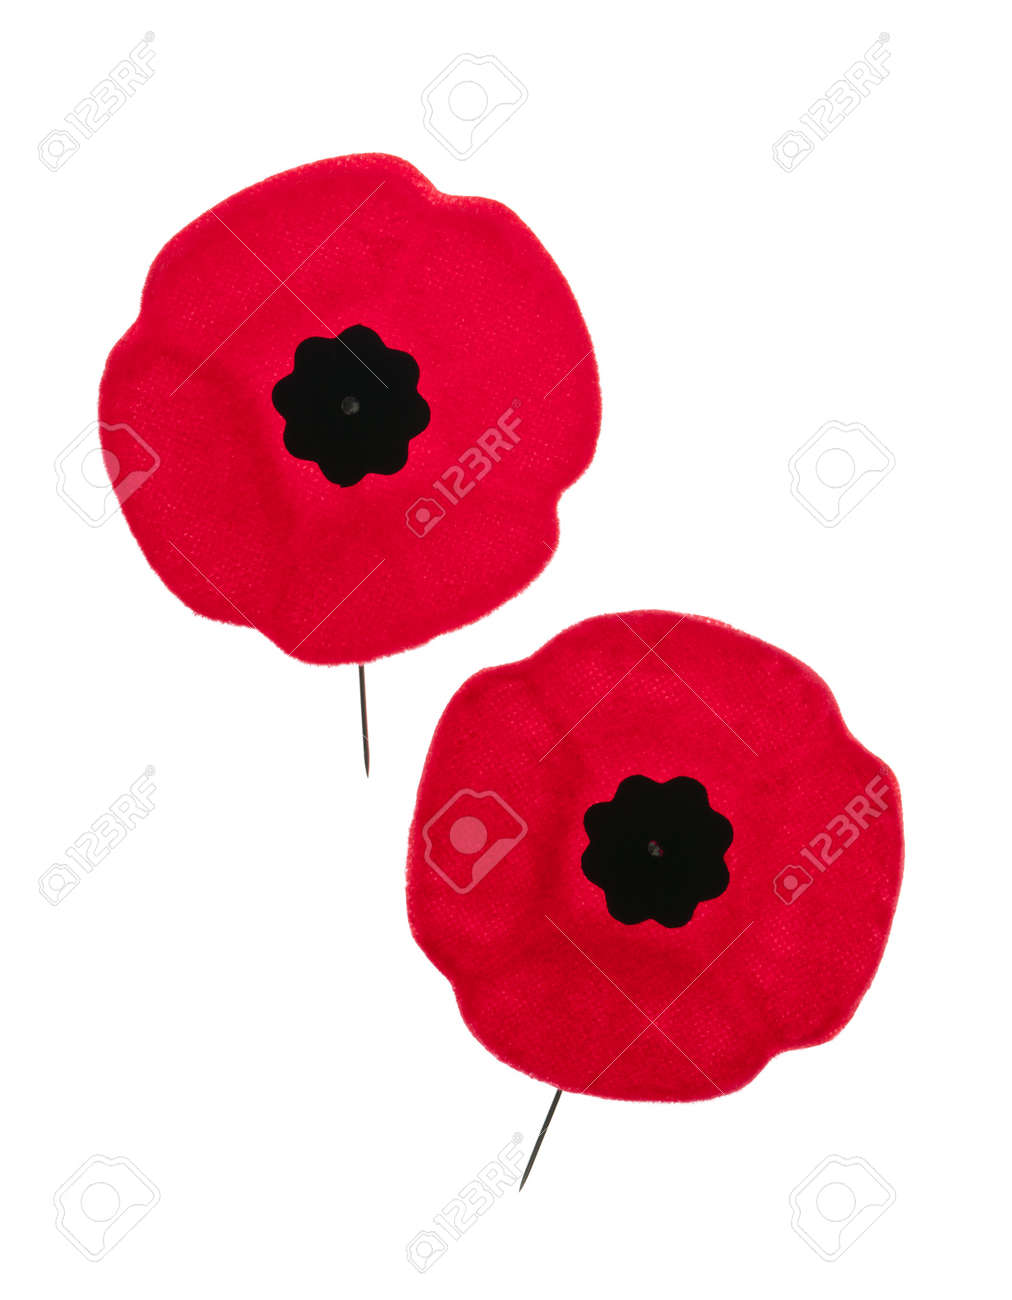 Two red poppy lapel pins for Remembrance Day Stock Photo - 16784815